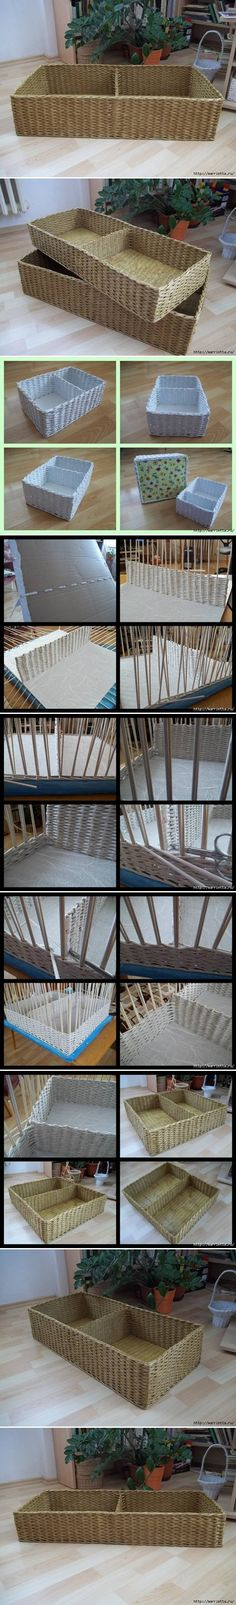 DIY Newspaper Basket With Compartments Pictures, Photos, and Images for Facebook, Tumblr, Pinterest, and Twitter